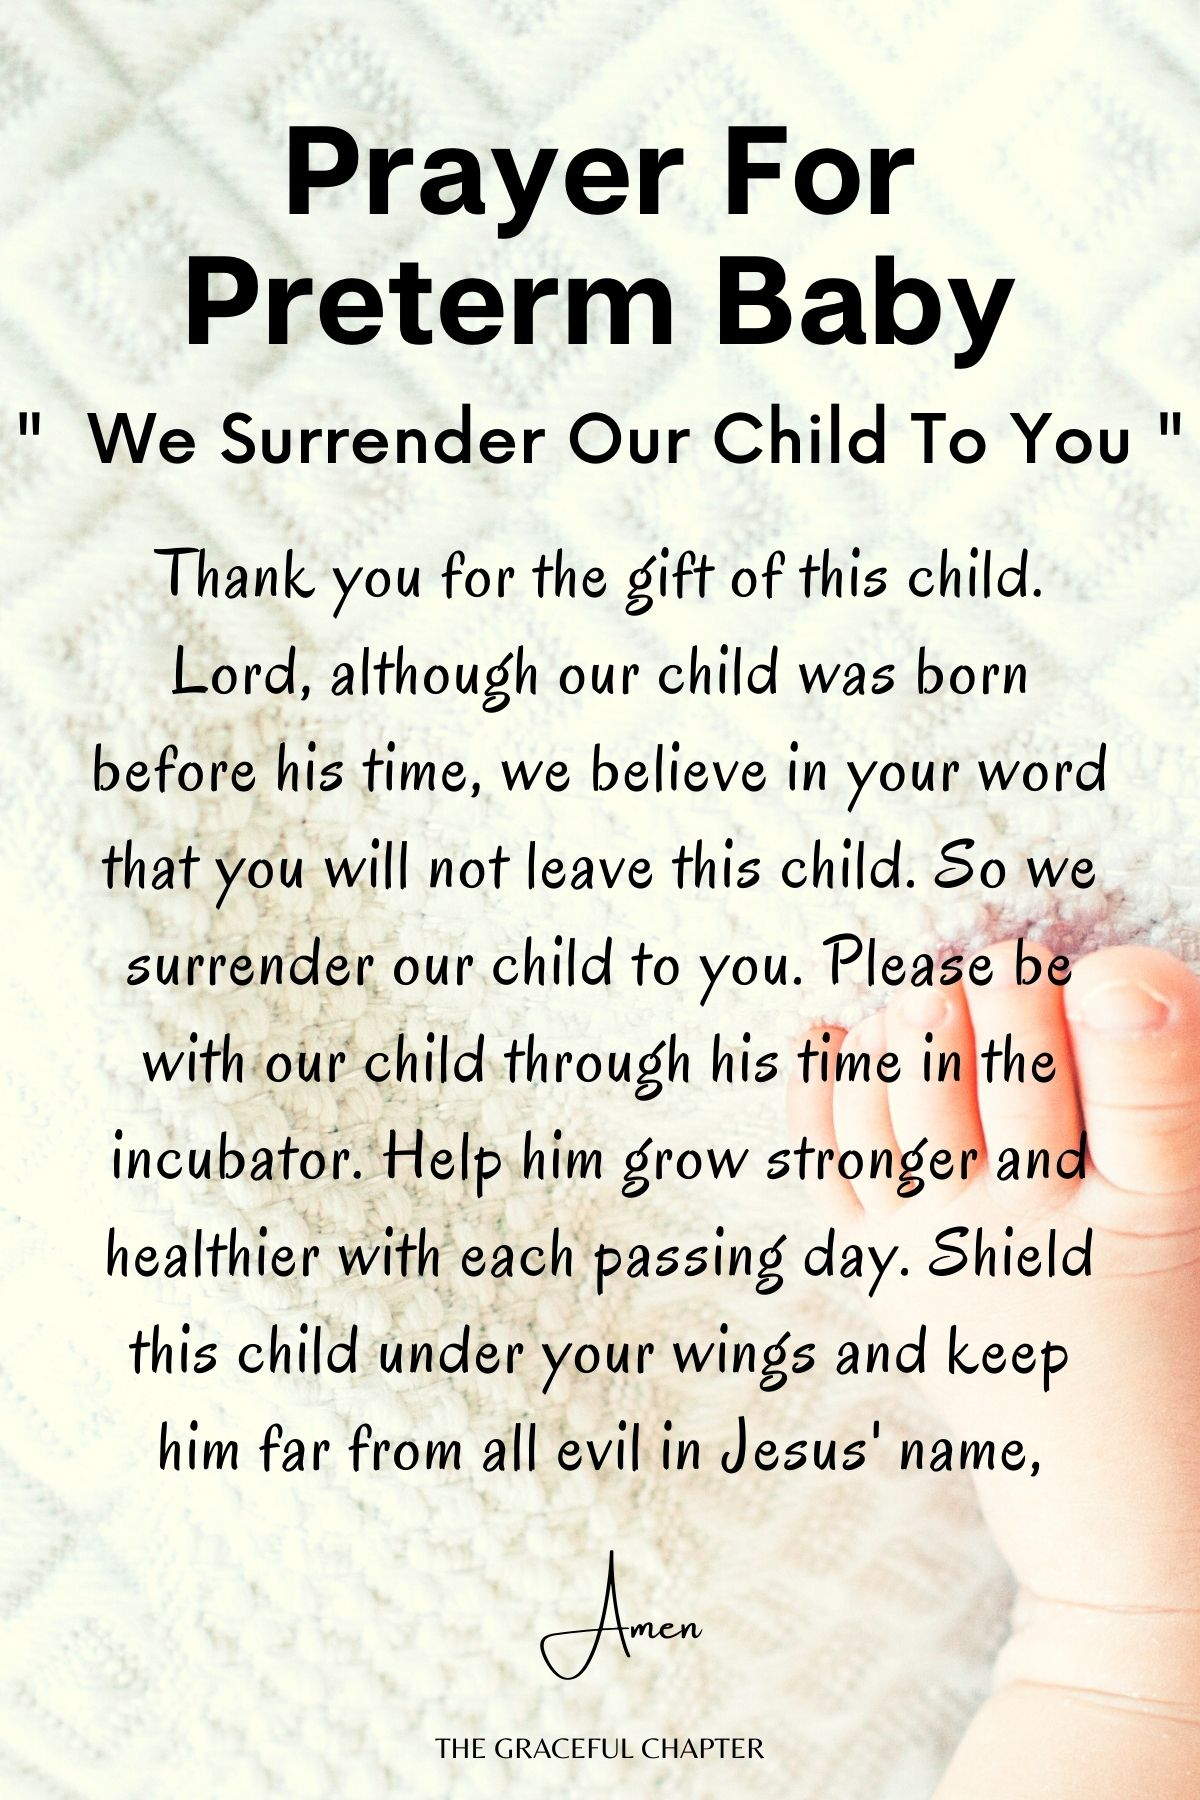 We surrender our child to you- preterm baby prayer